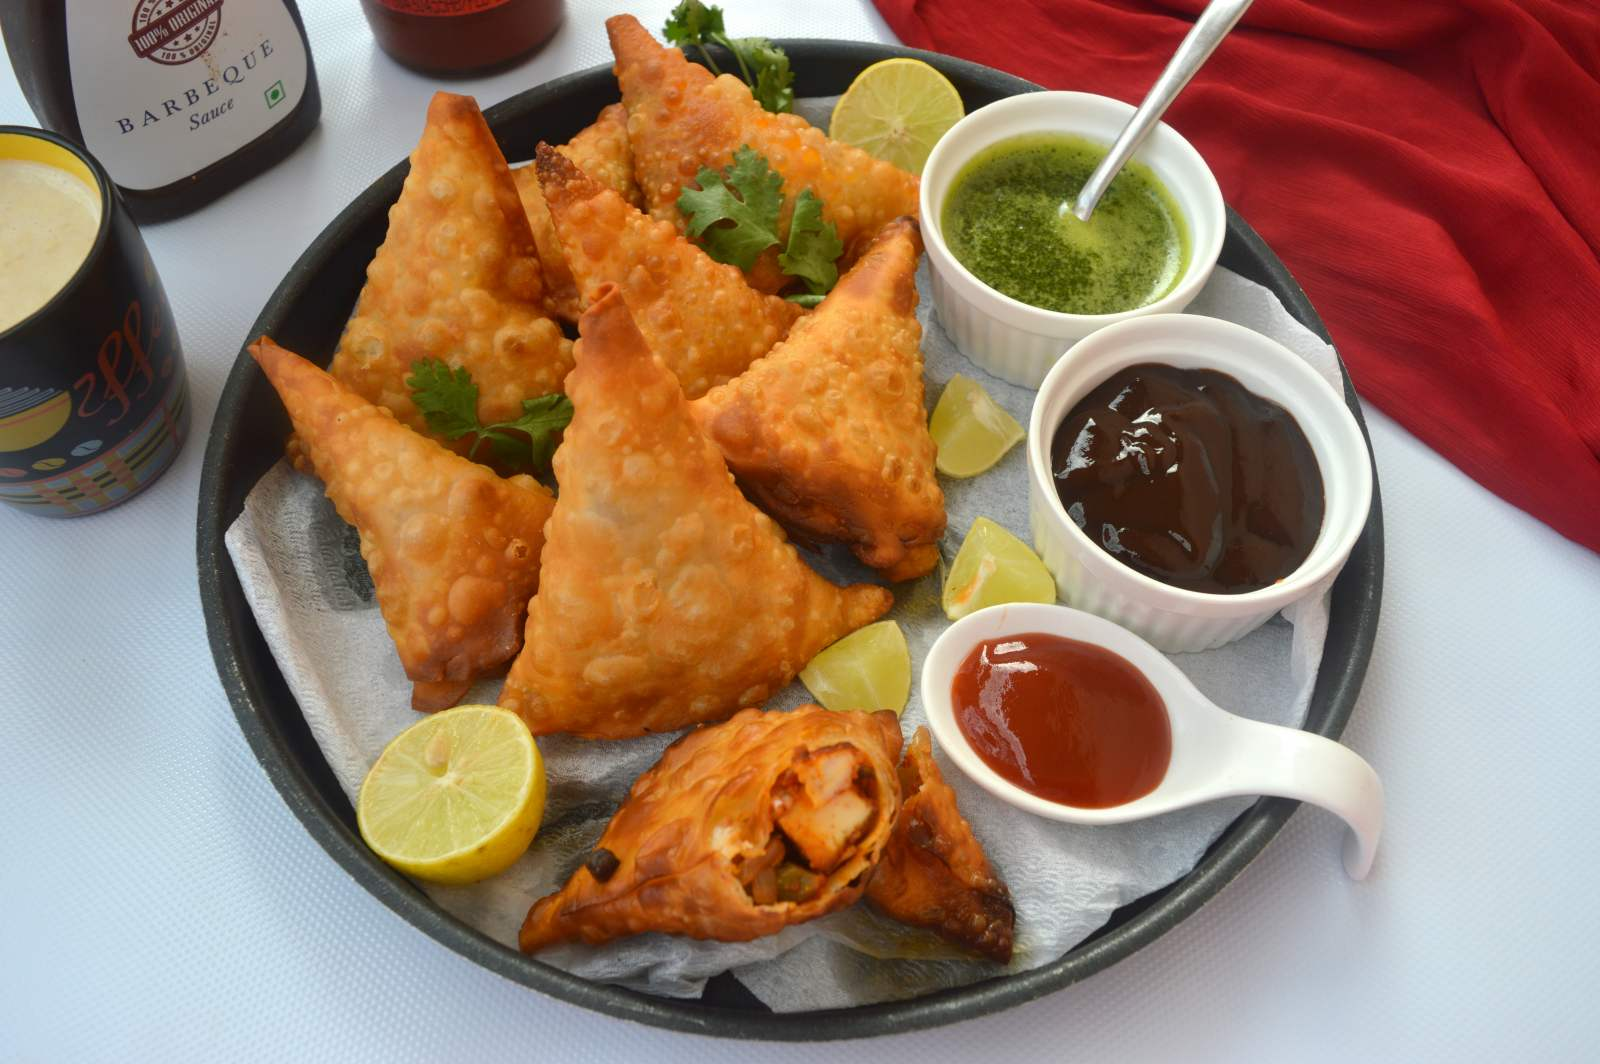 Tandoori Paneer Samosa Recipe With Baked Option By Interiors Inside Ideas Interiors design about Everything [magnanprojects.com]